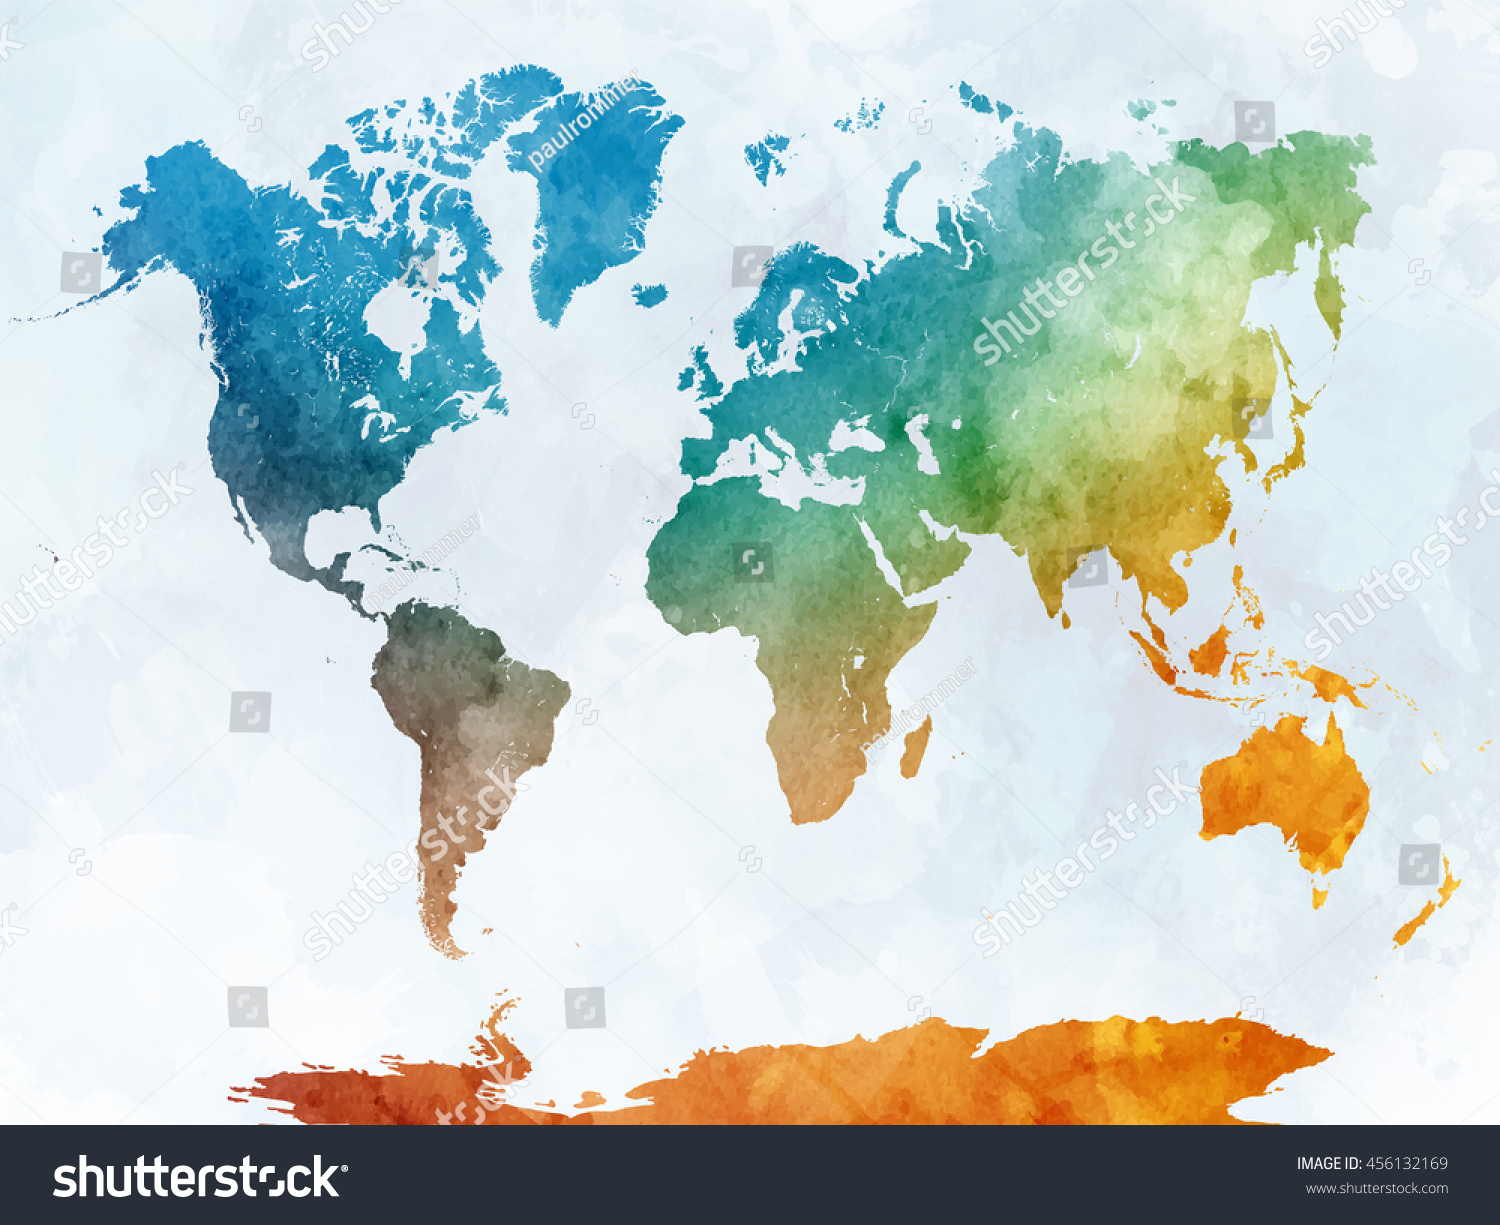 World map watercolor painting abstract splatters stock world map in watercolor painting abstract splatters gumiabroncs Images